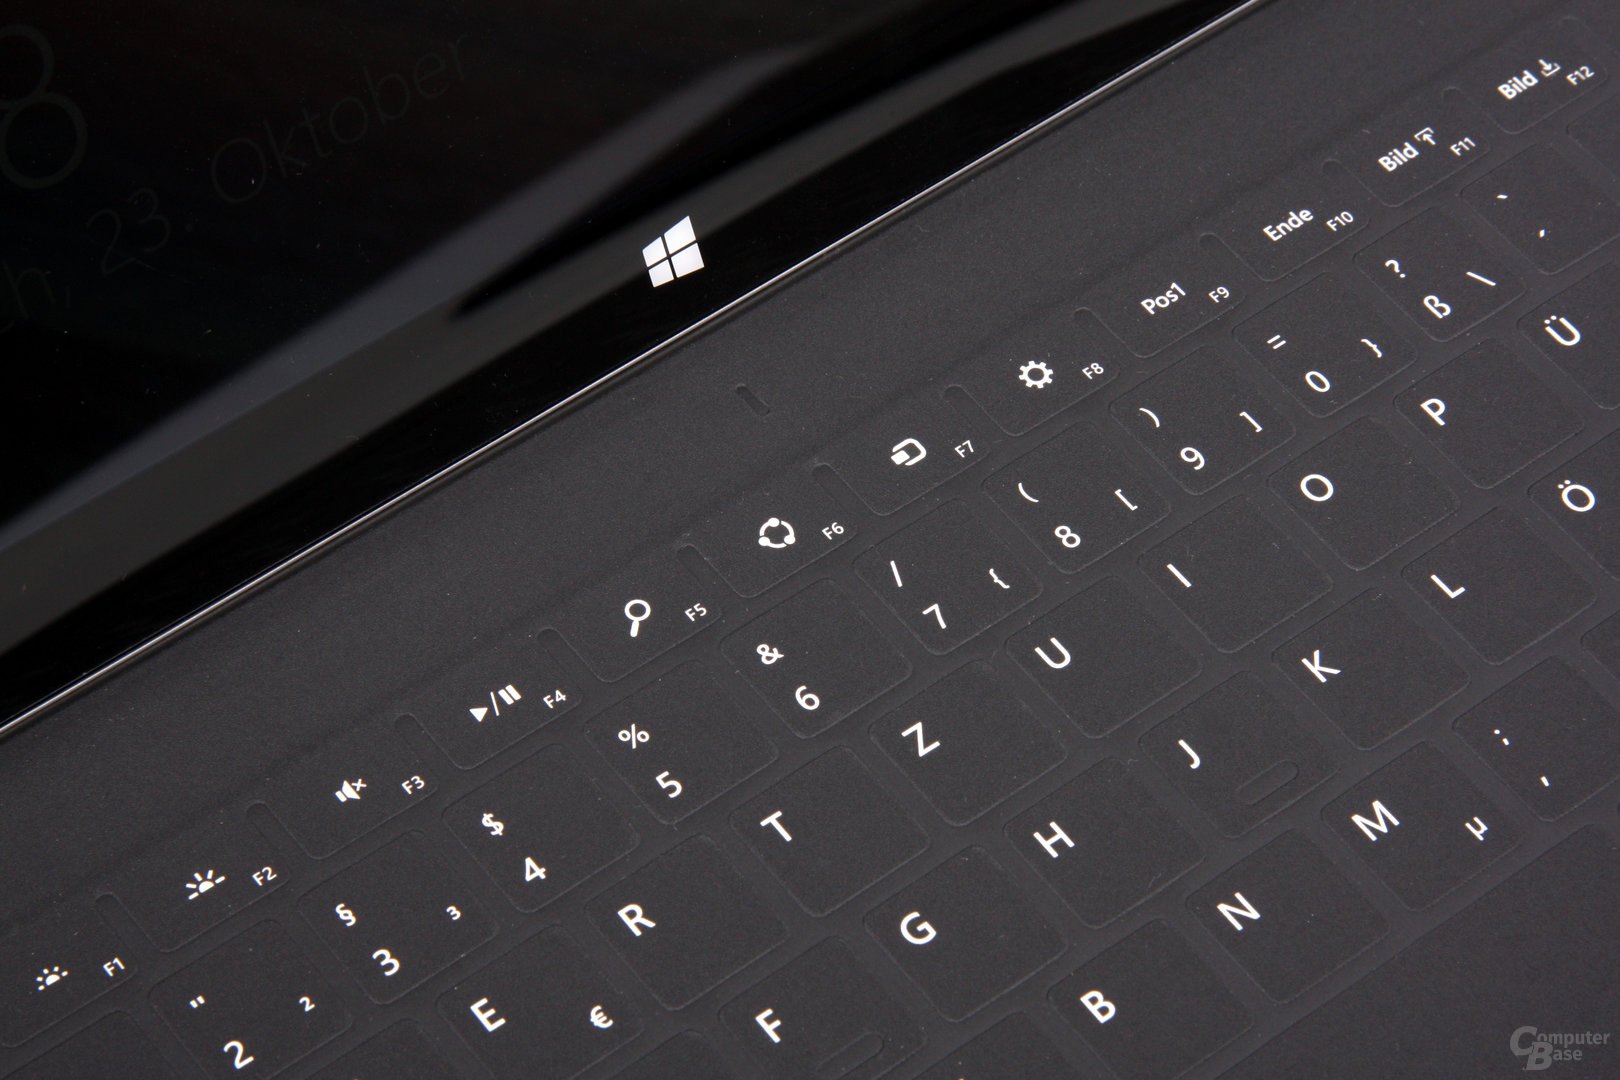 Surface 2 / Touch Cover 2